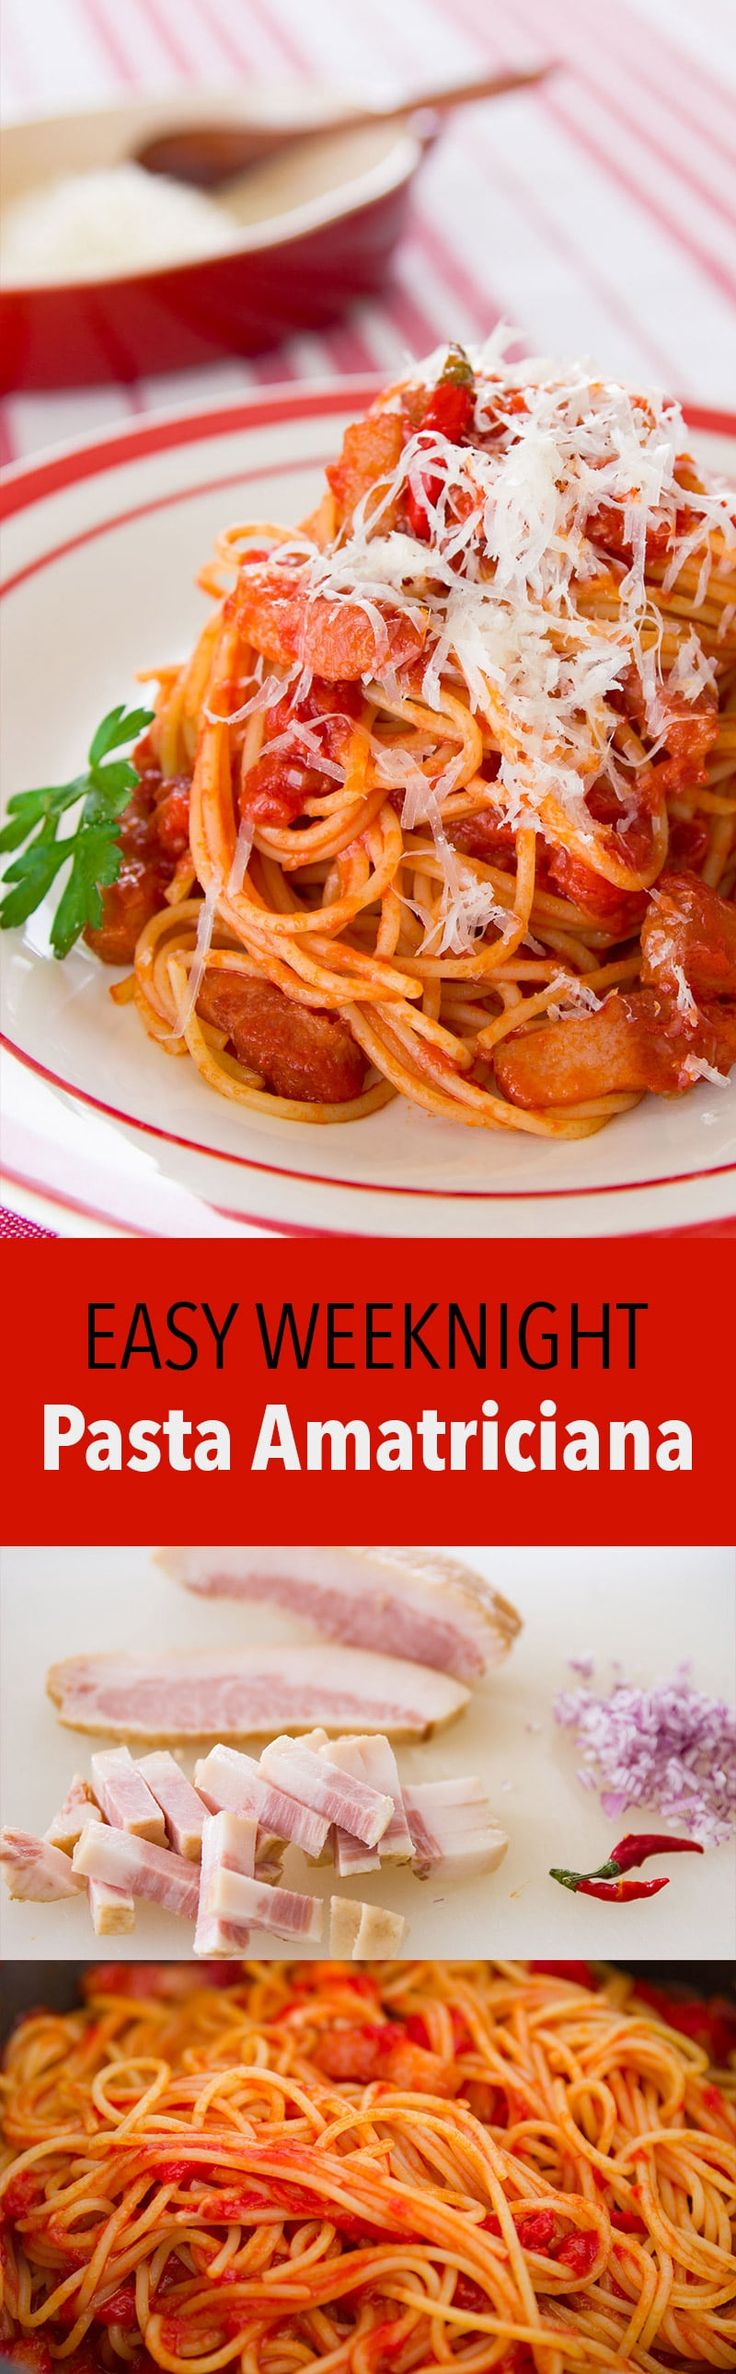 Easy delicious recipe for Sugo all'Amatriciana, a simple sauce from Amatrice made with guanciale, tomatoes and pecorino cheese.